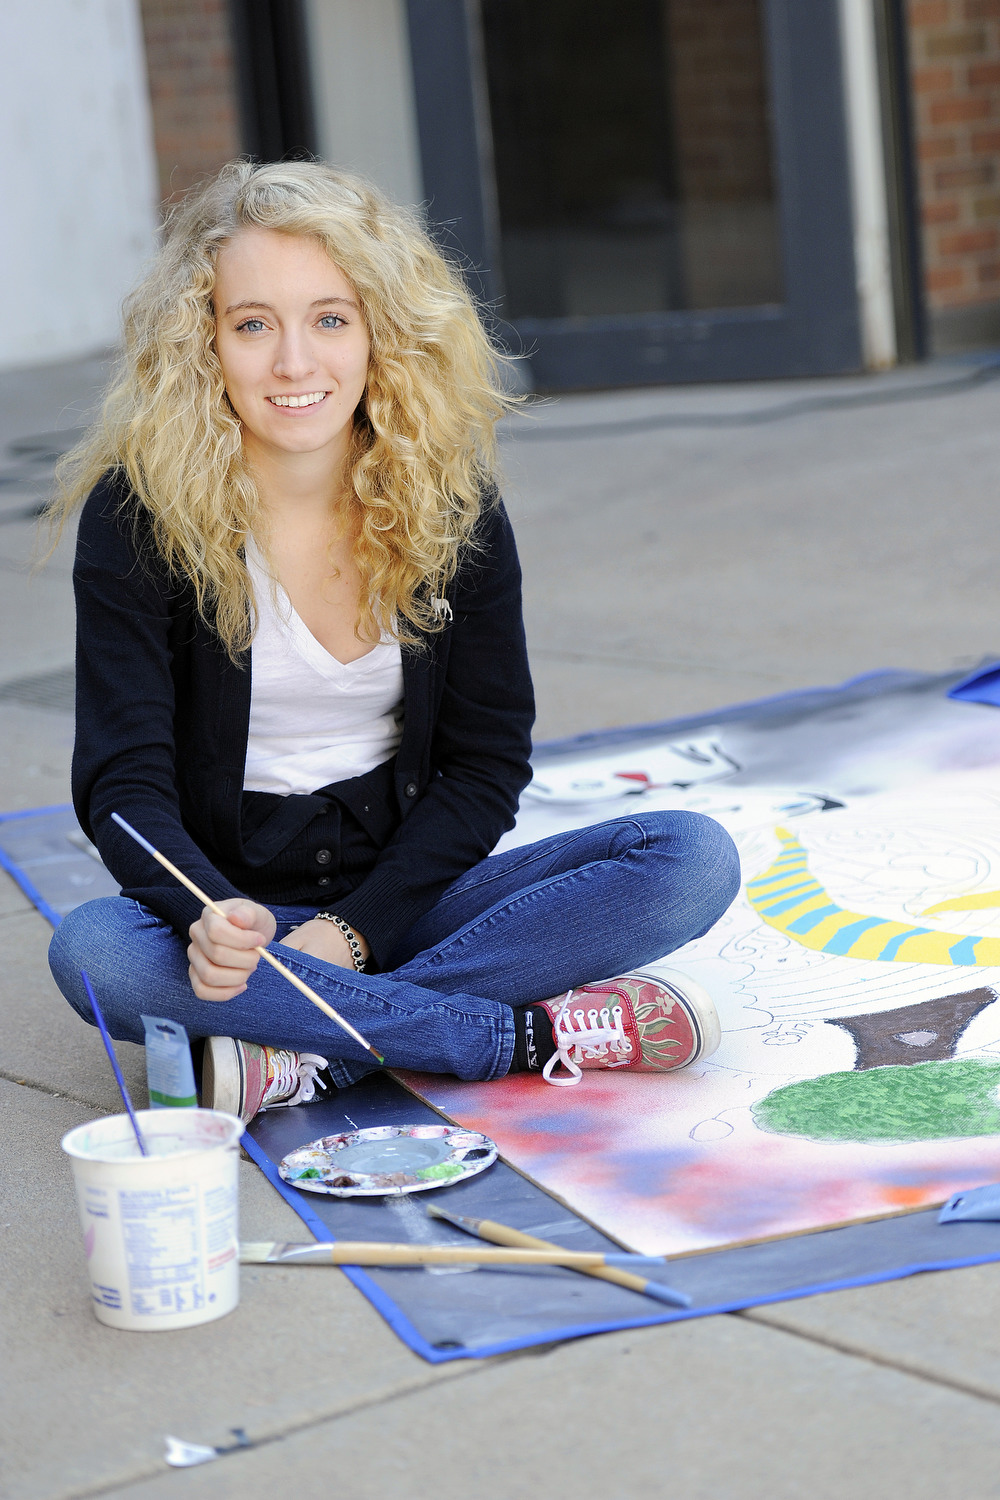 A student in art class at Denver Academy.